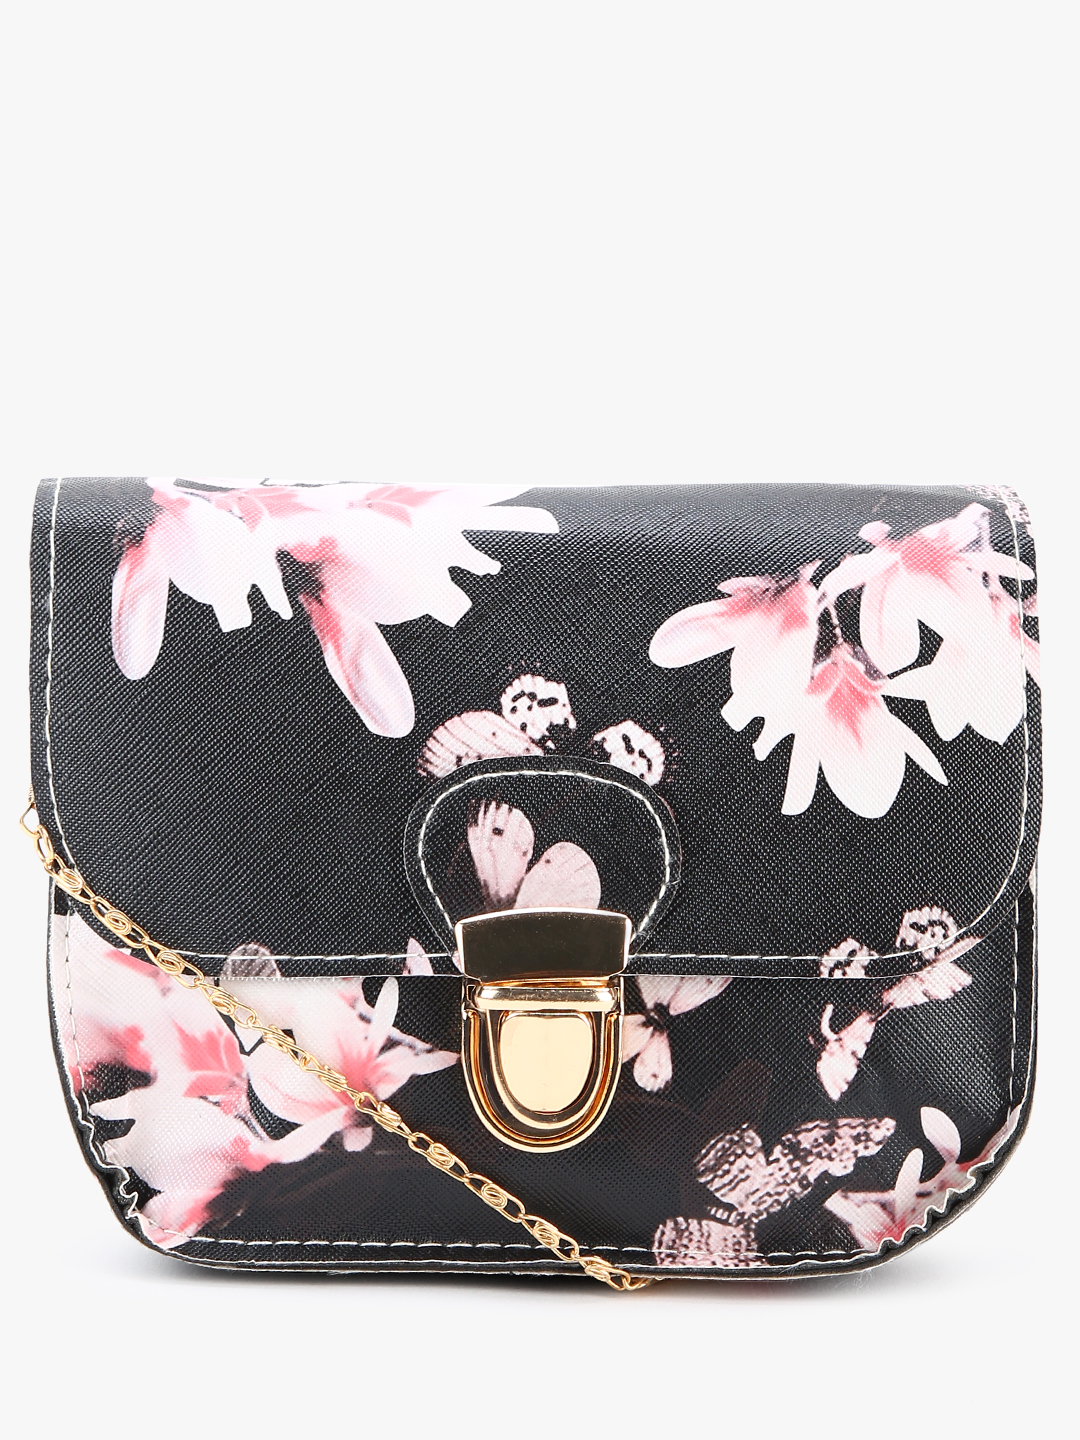 EmmaCloth Black Floral Print Sling Bag 1